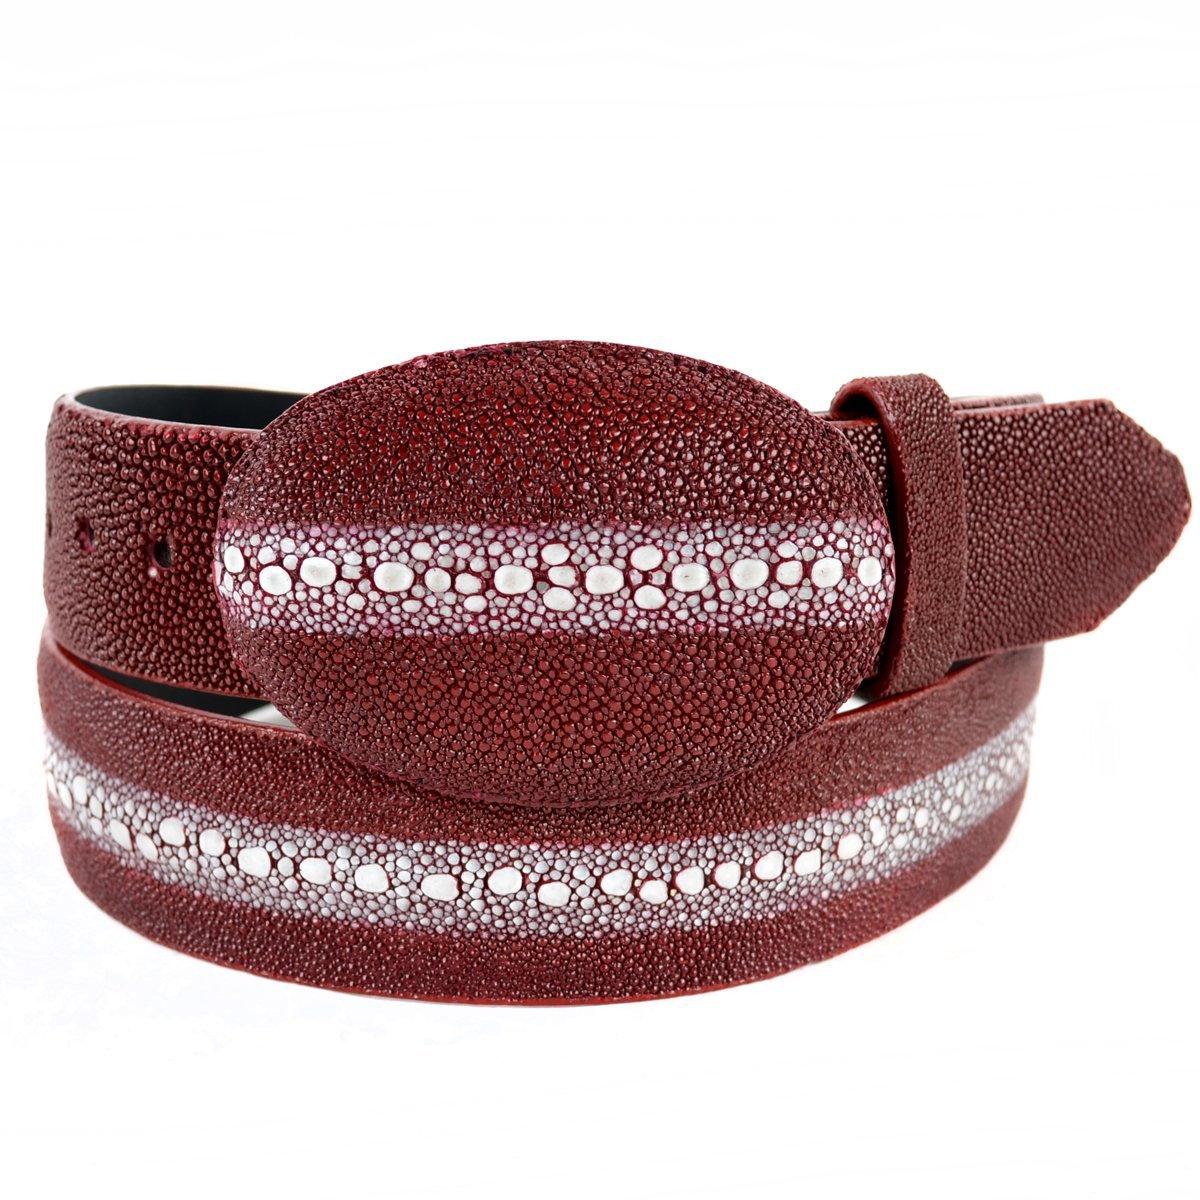 Original Burgundy Rowstone StingRay Skin Belt